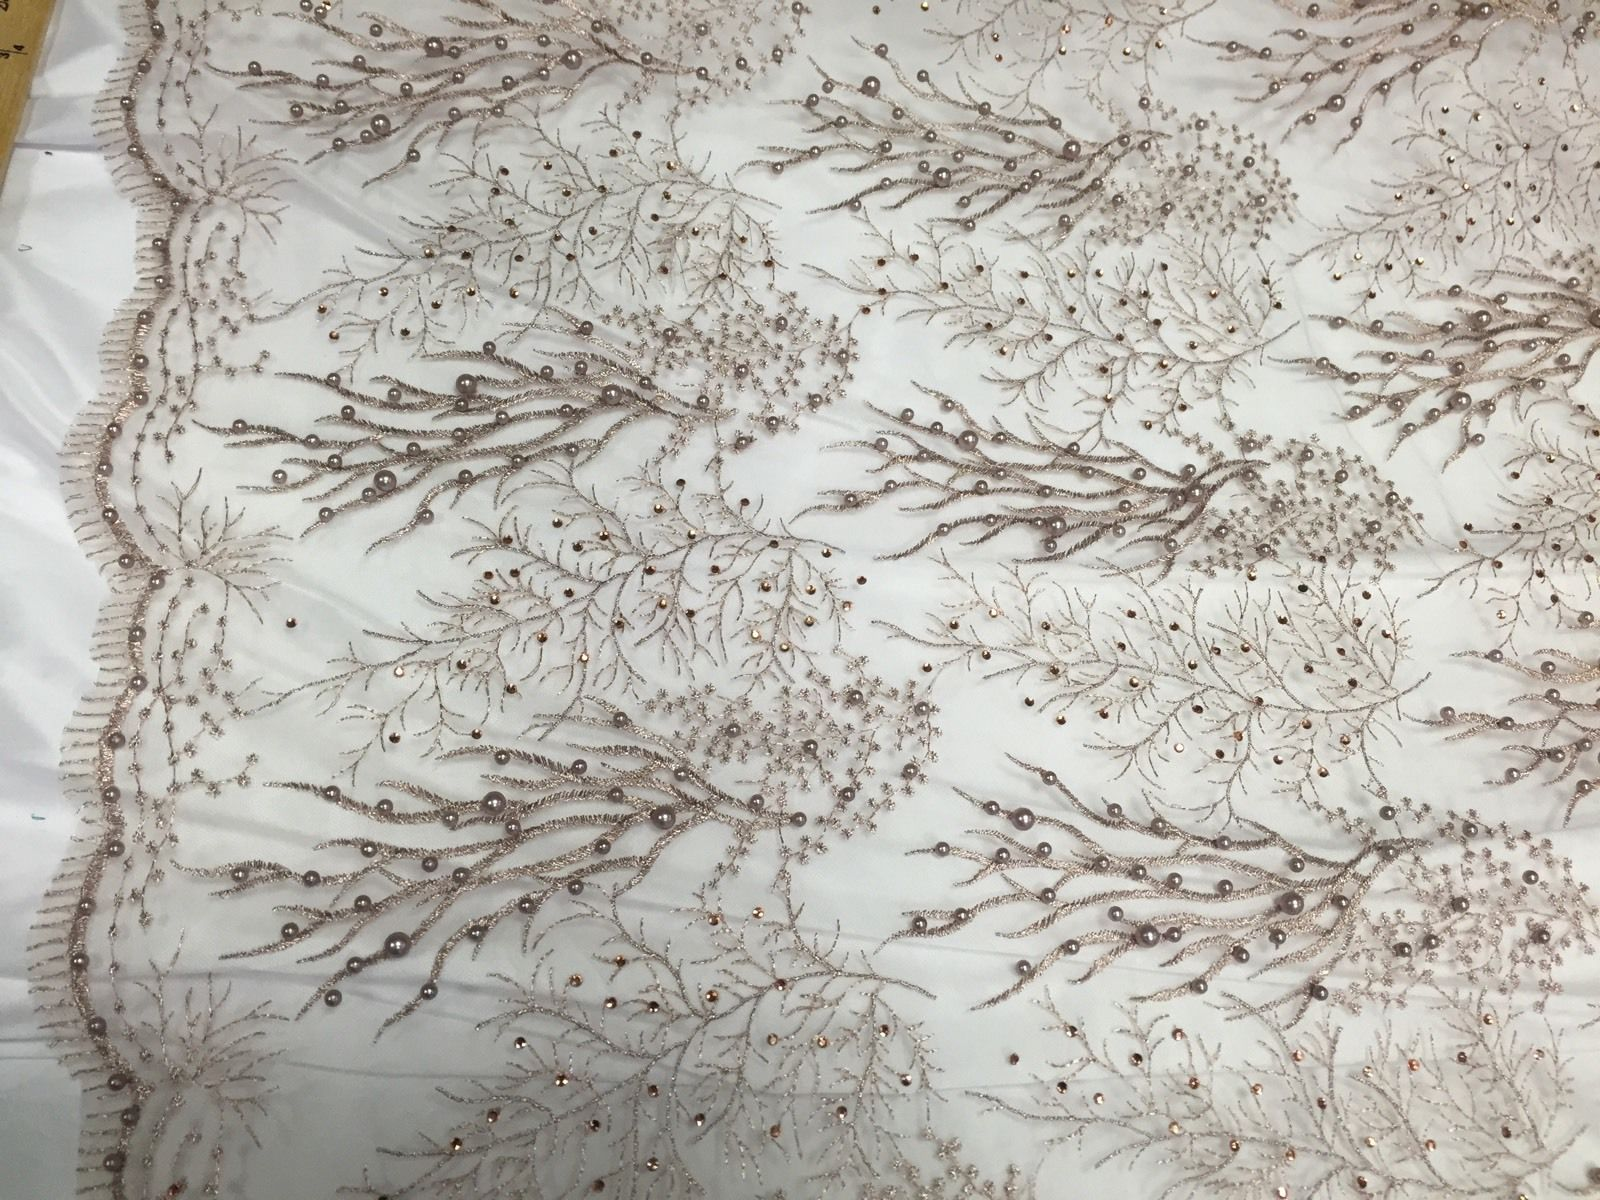 Royalty Pearls Branch Design Mesh Lace Fabric Nude. Sold By The Yard - KINGDOM OF FABRICS